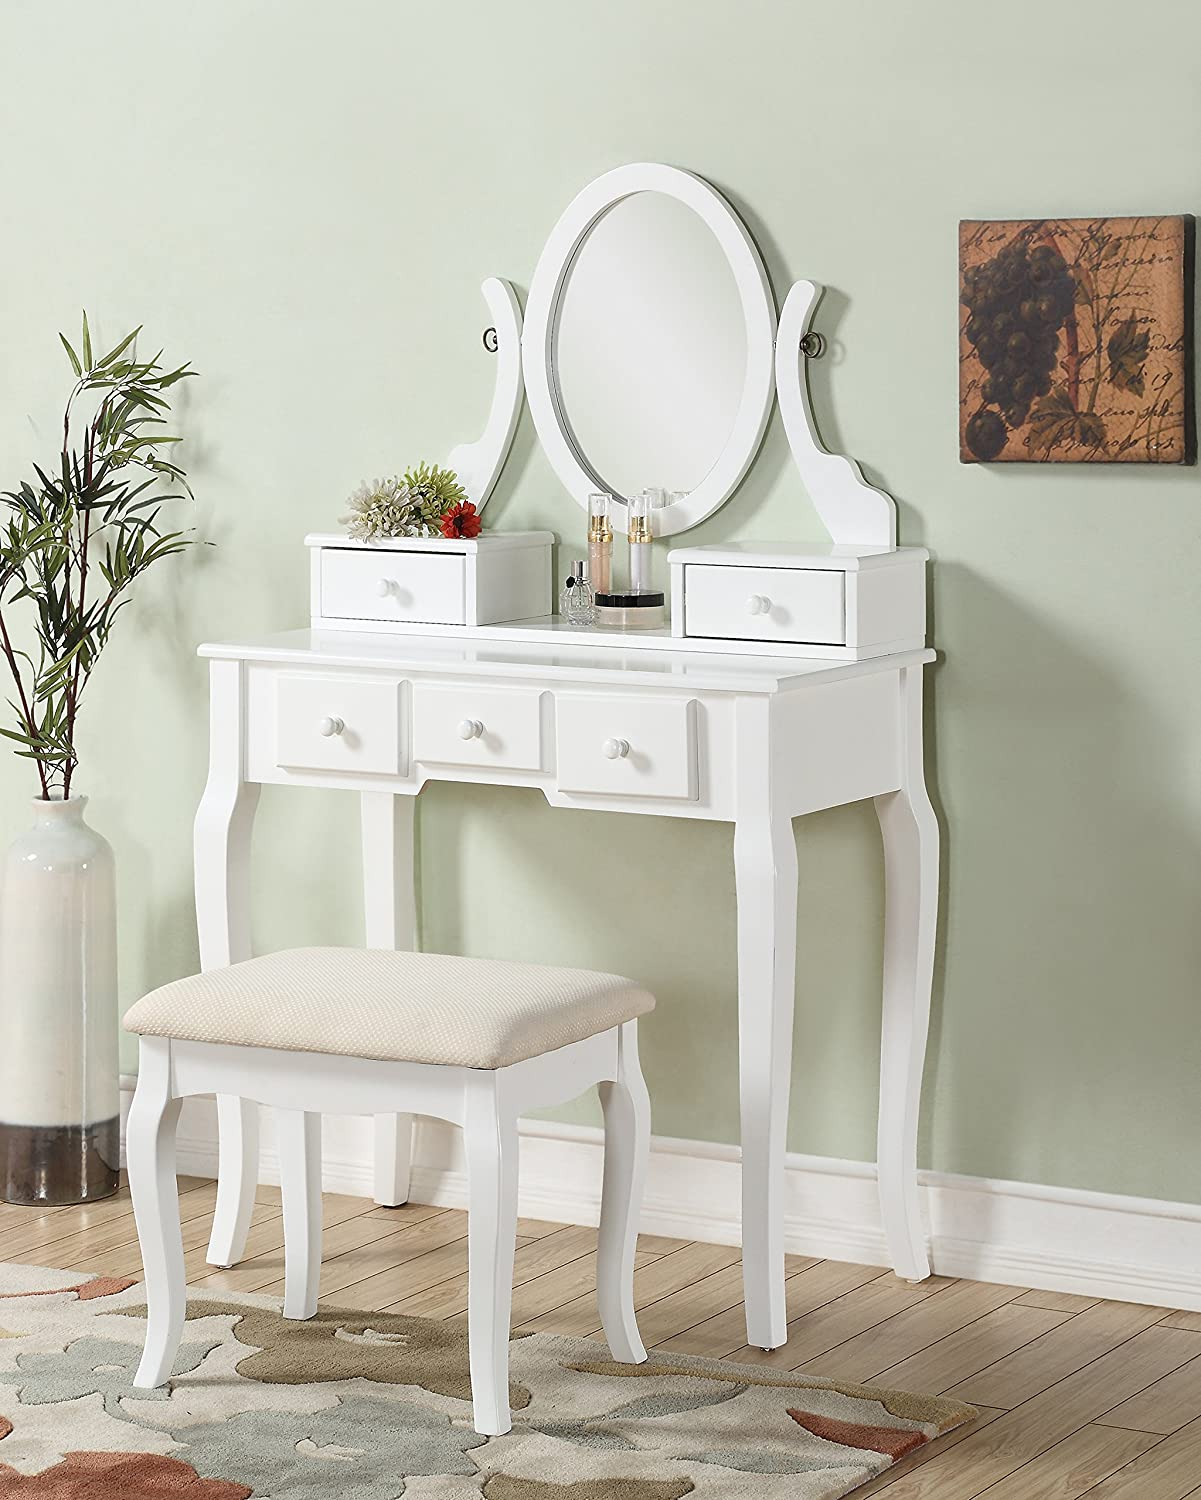 Roundhill Furniture Make-Up Vanity Table and Stool Set